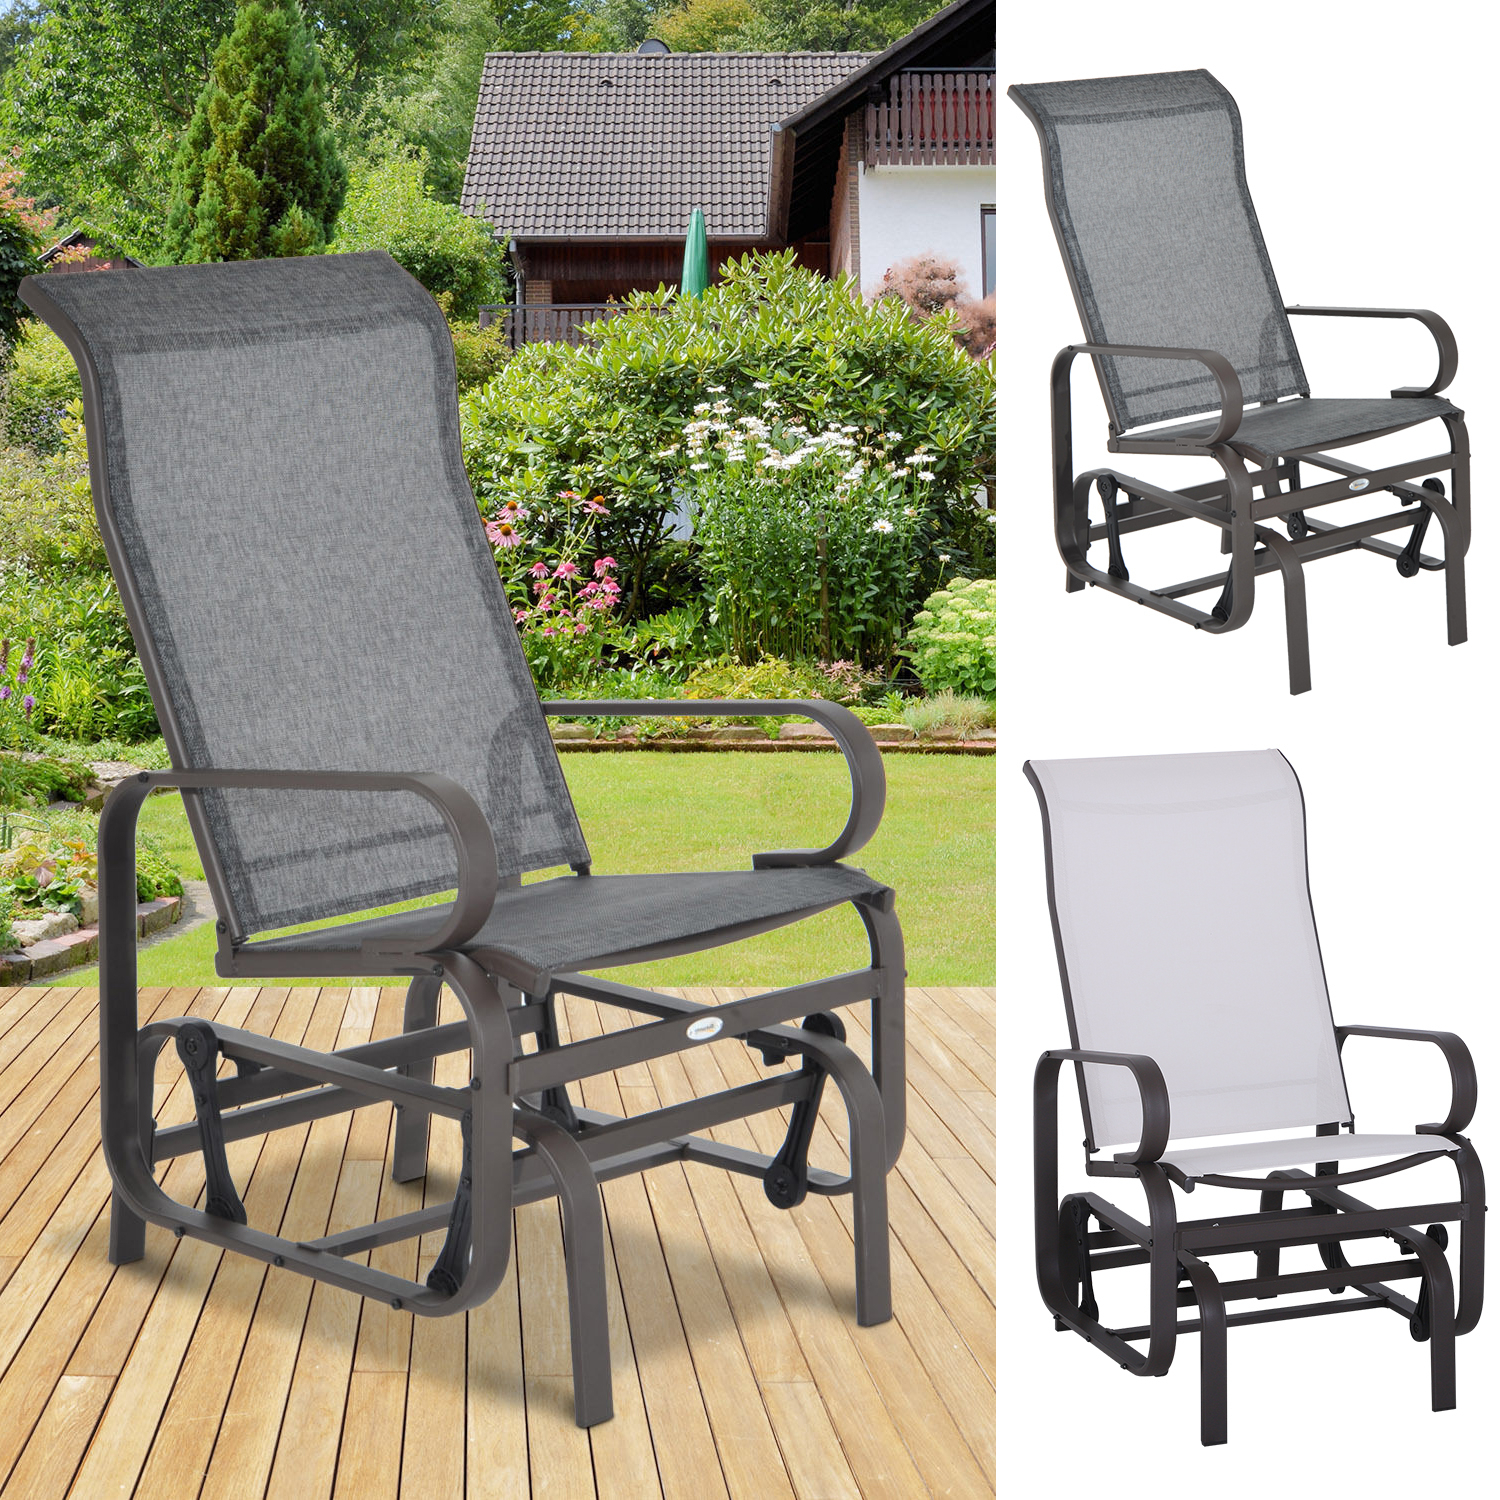 Details About Patio Sling Fabric Glider Swing Chair Seat Lounger Porch Rocker Outdoor Garden Pertaining To Outdoor Fabric Glider Benches (View 9 of 25)